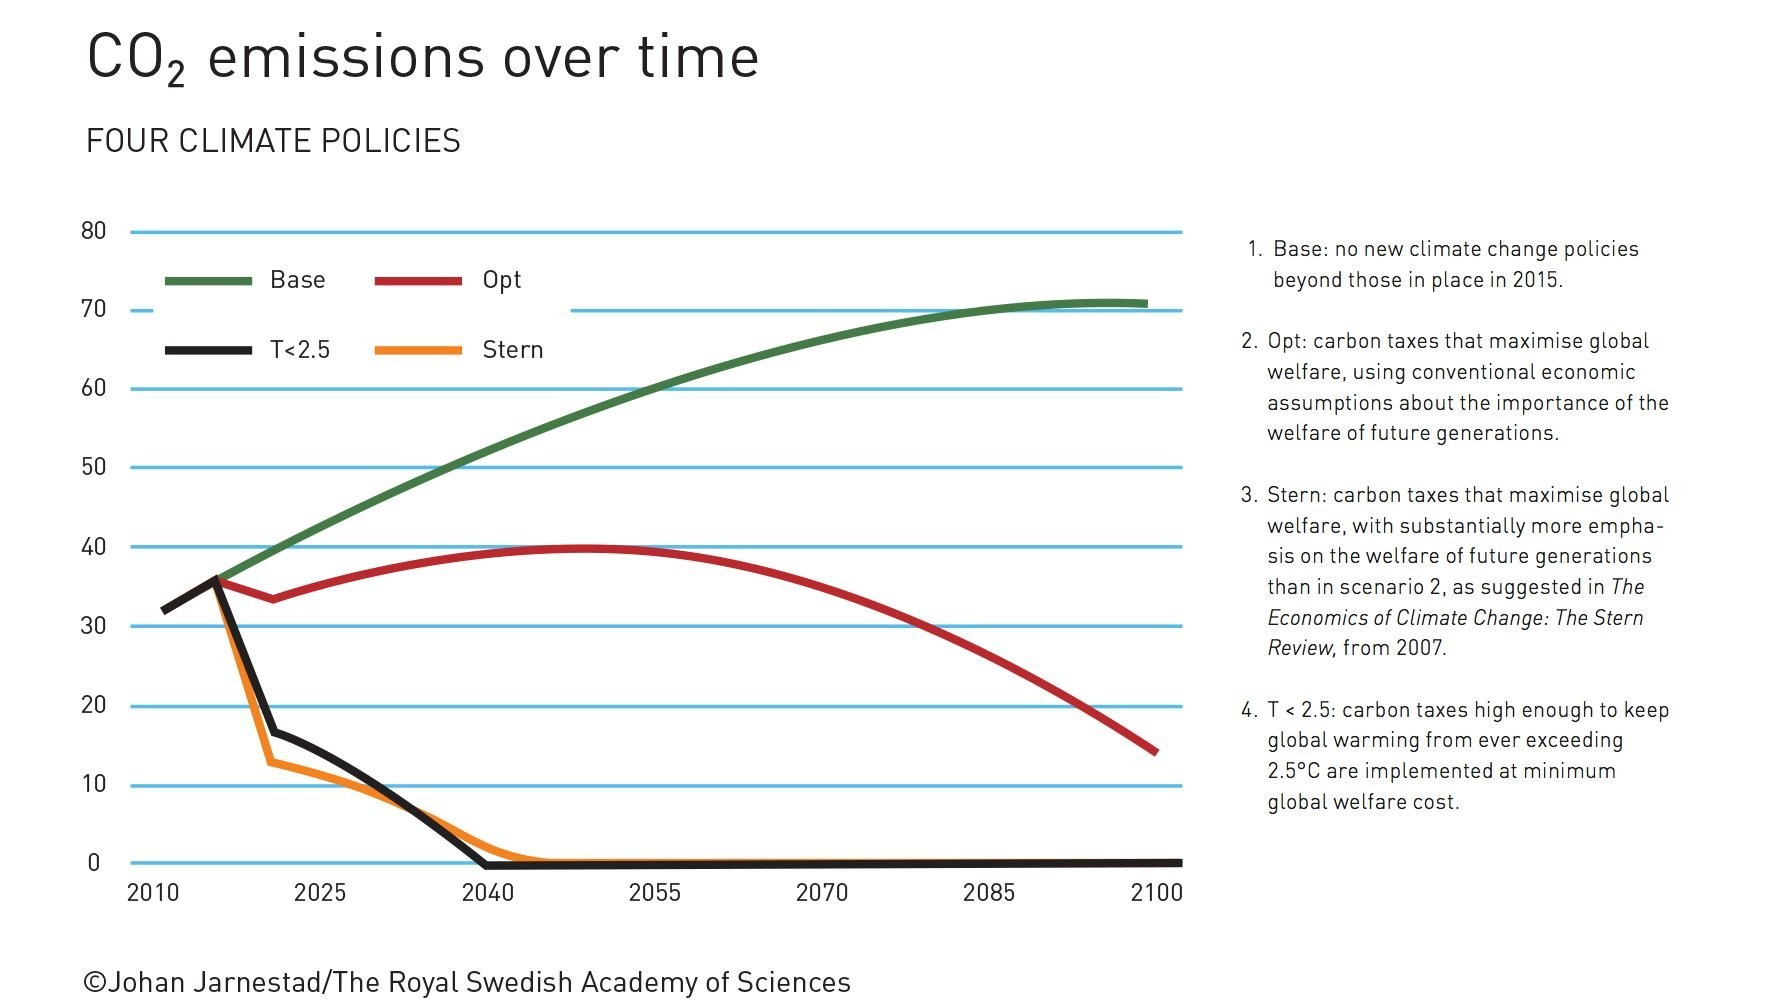 How four carbon tax policies will affect future CO2 emissions, according to William Nordhaus' models